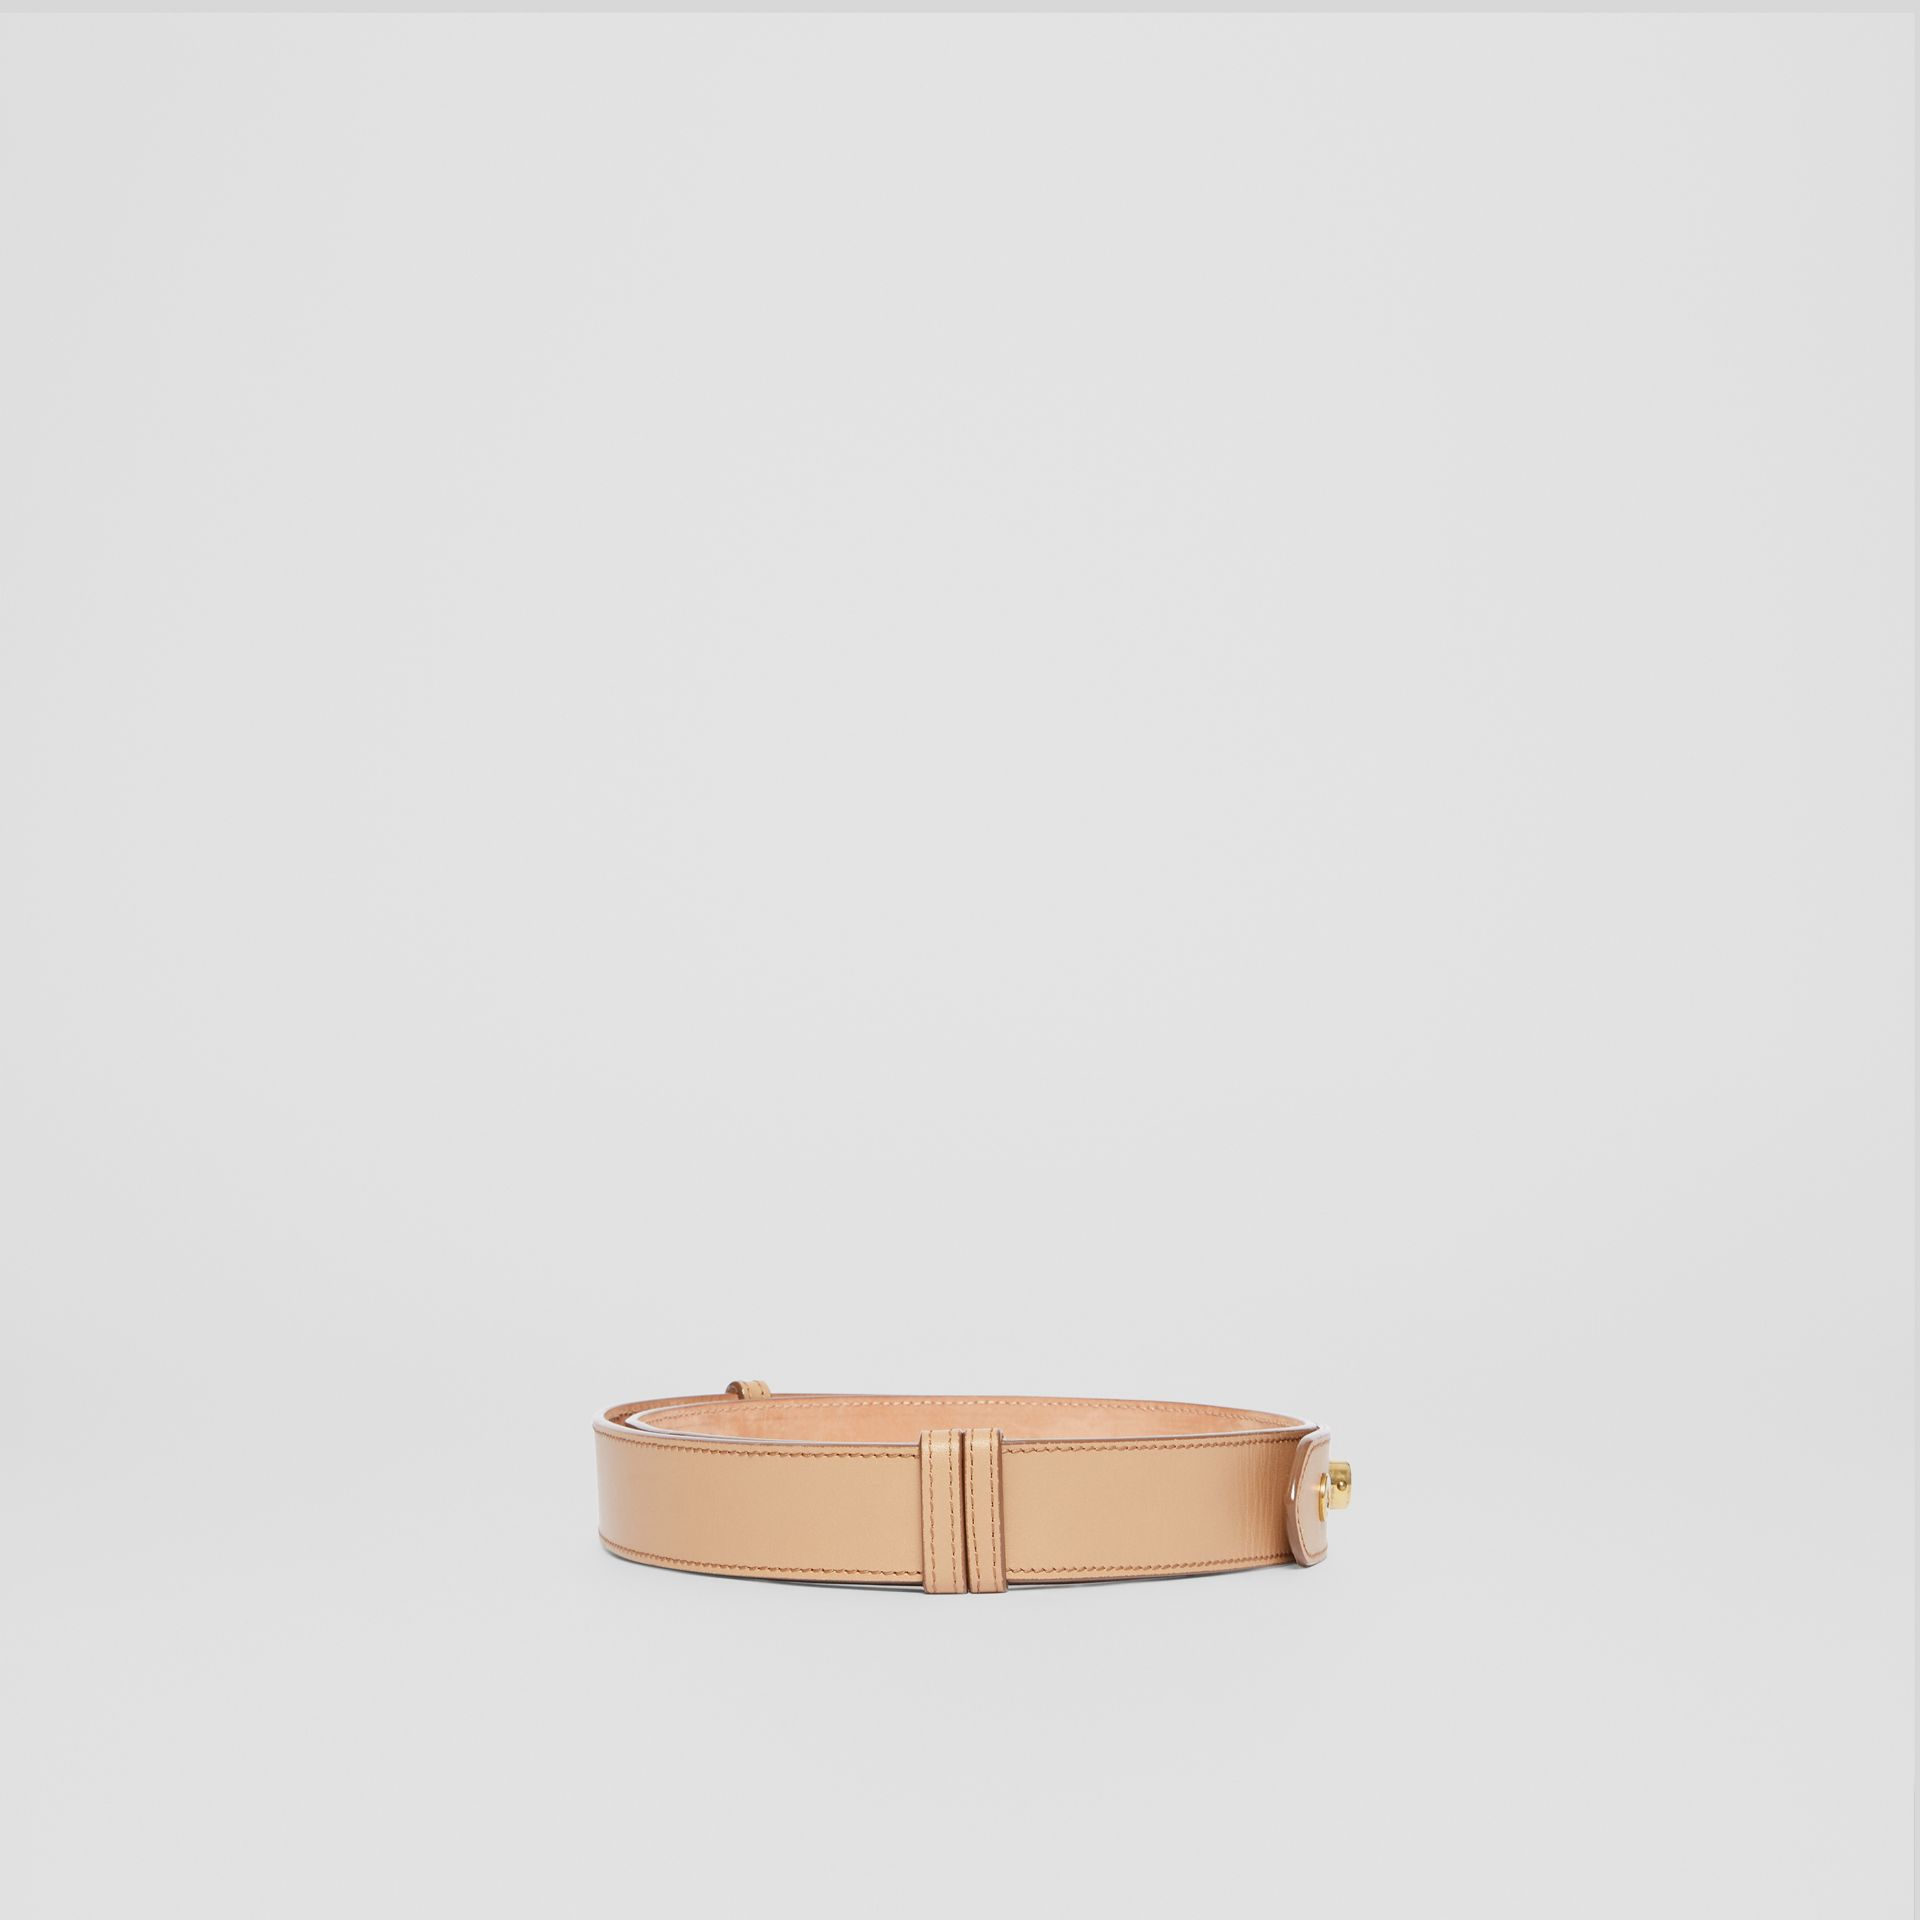 Triple Stud Leather Belt in Honey - Women | Burberry - gallery image 4